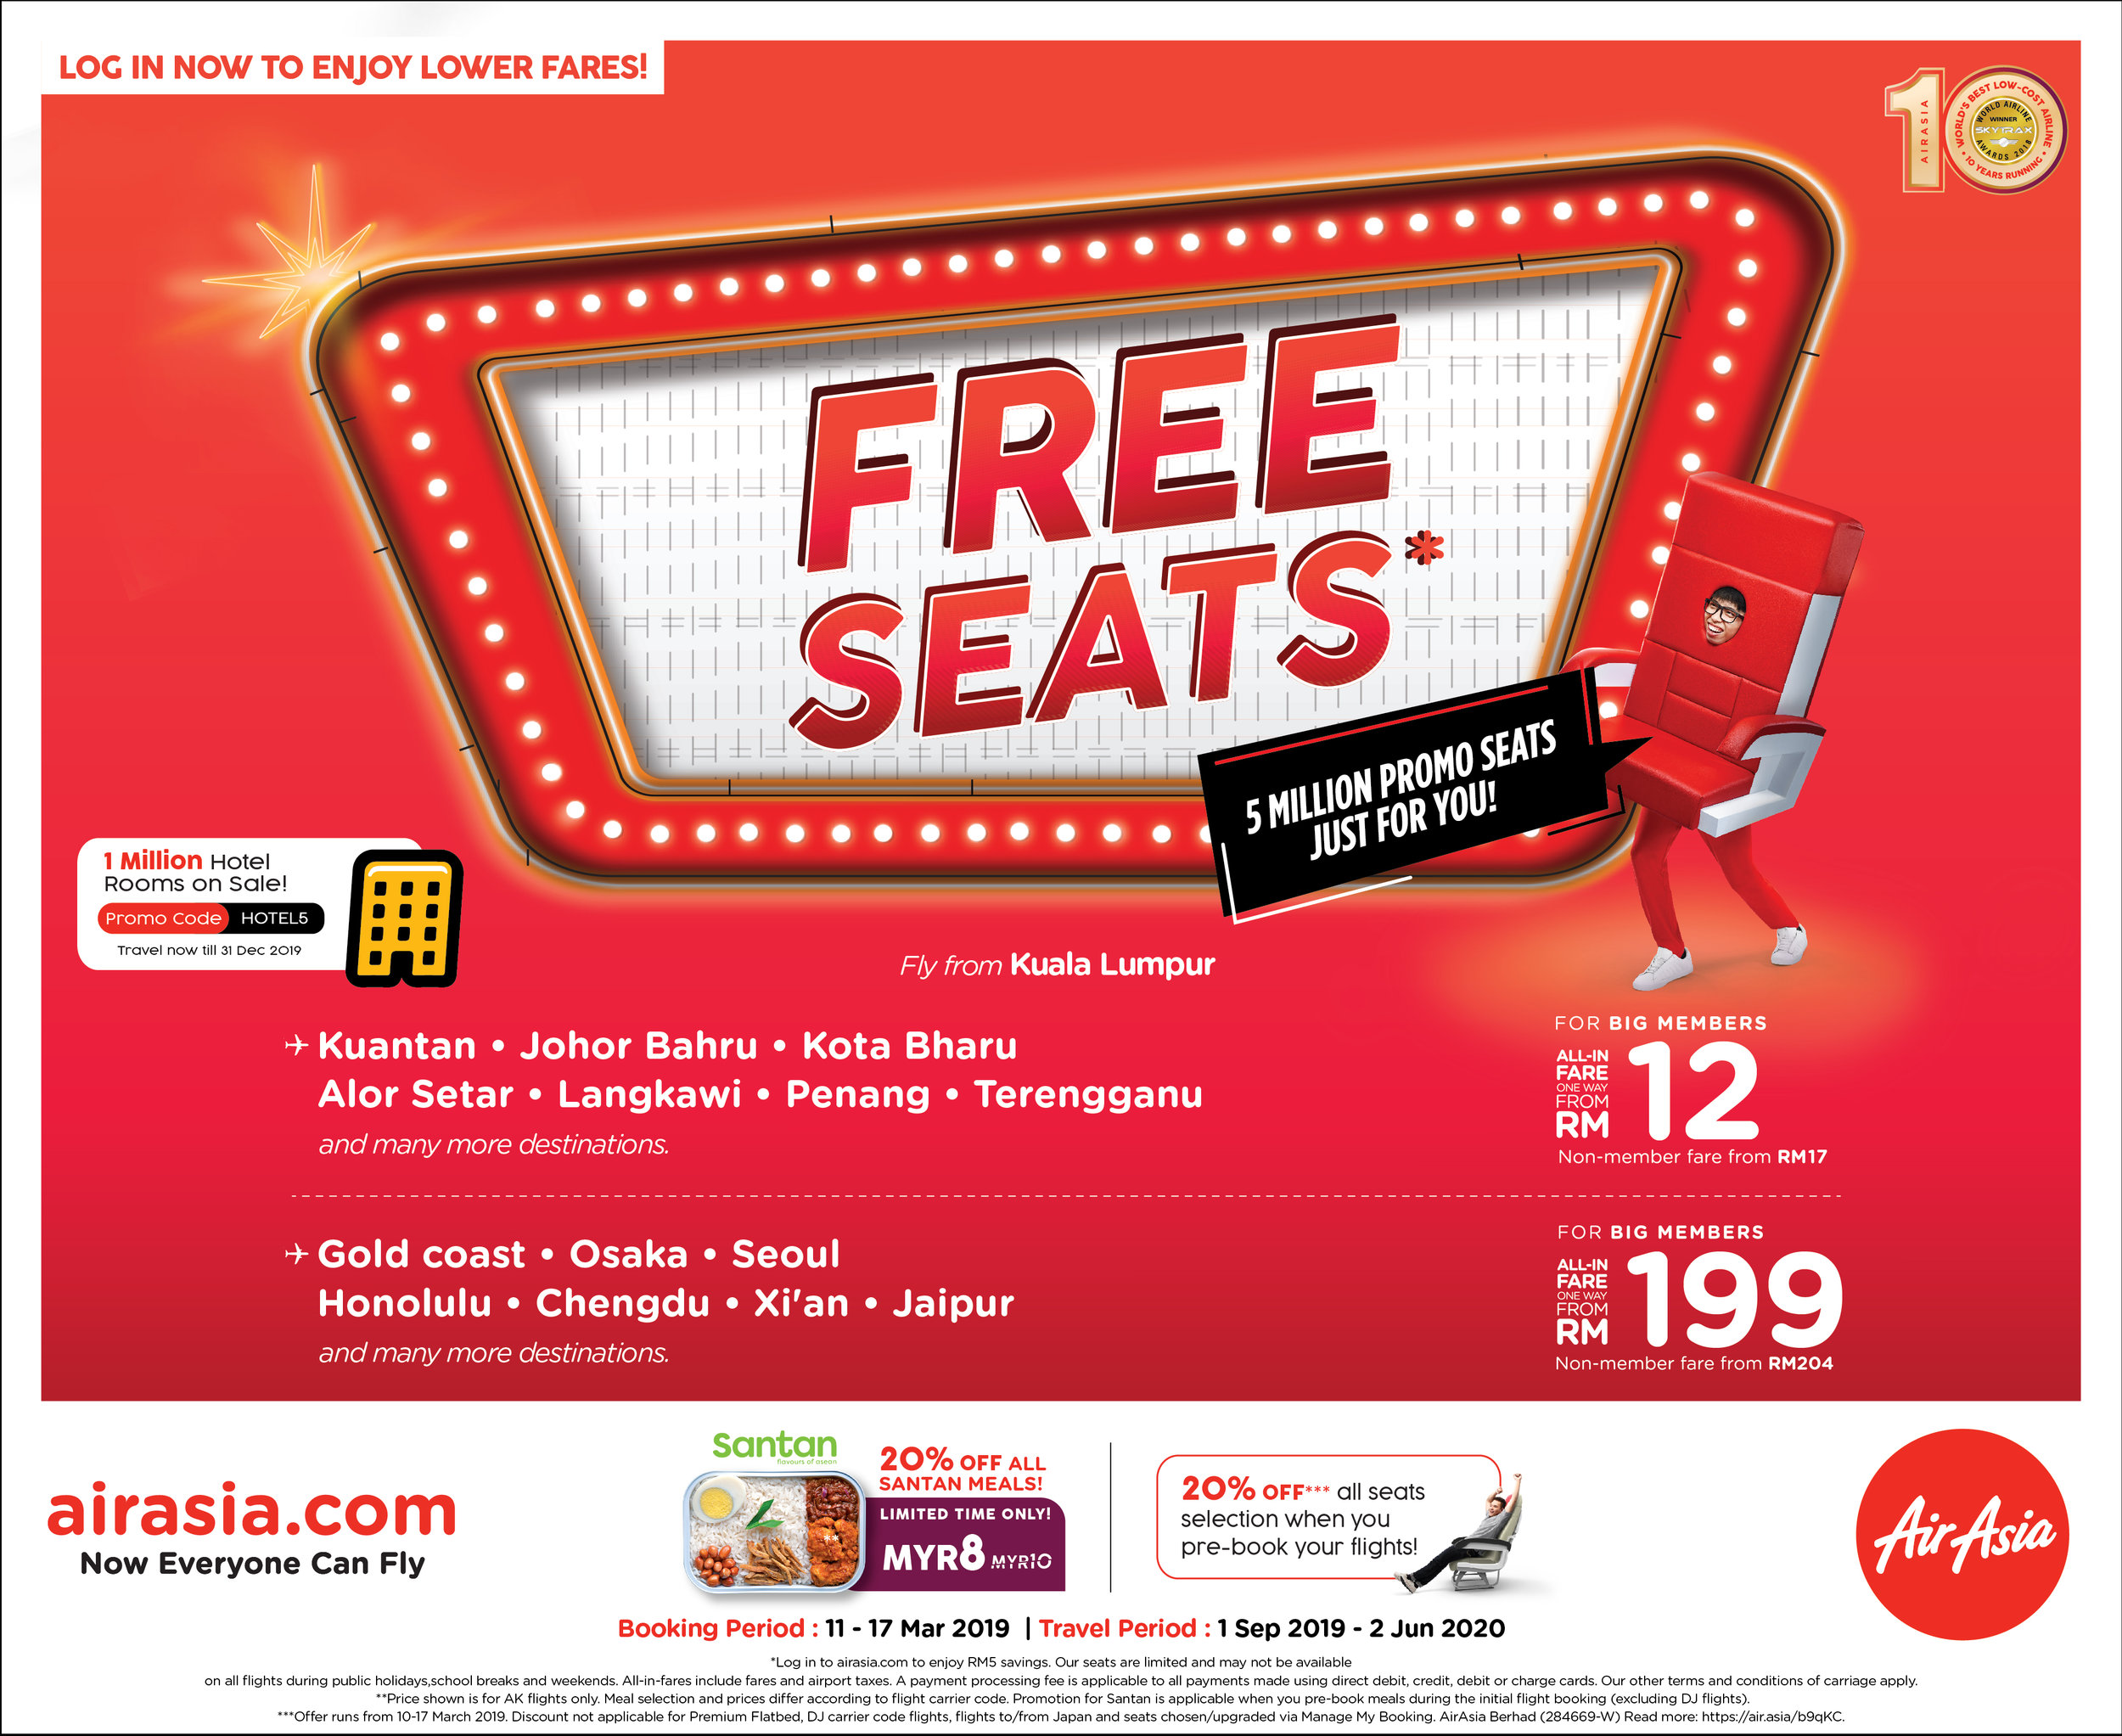 Air asia flight promotion